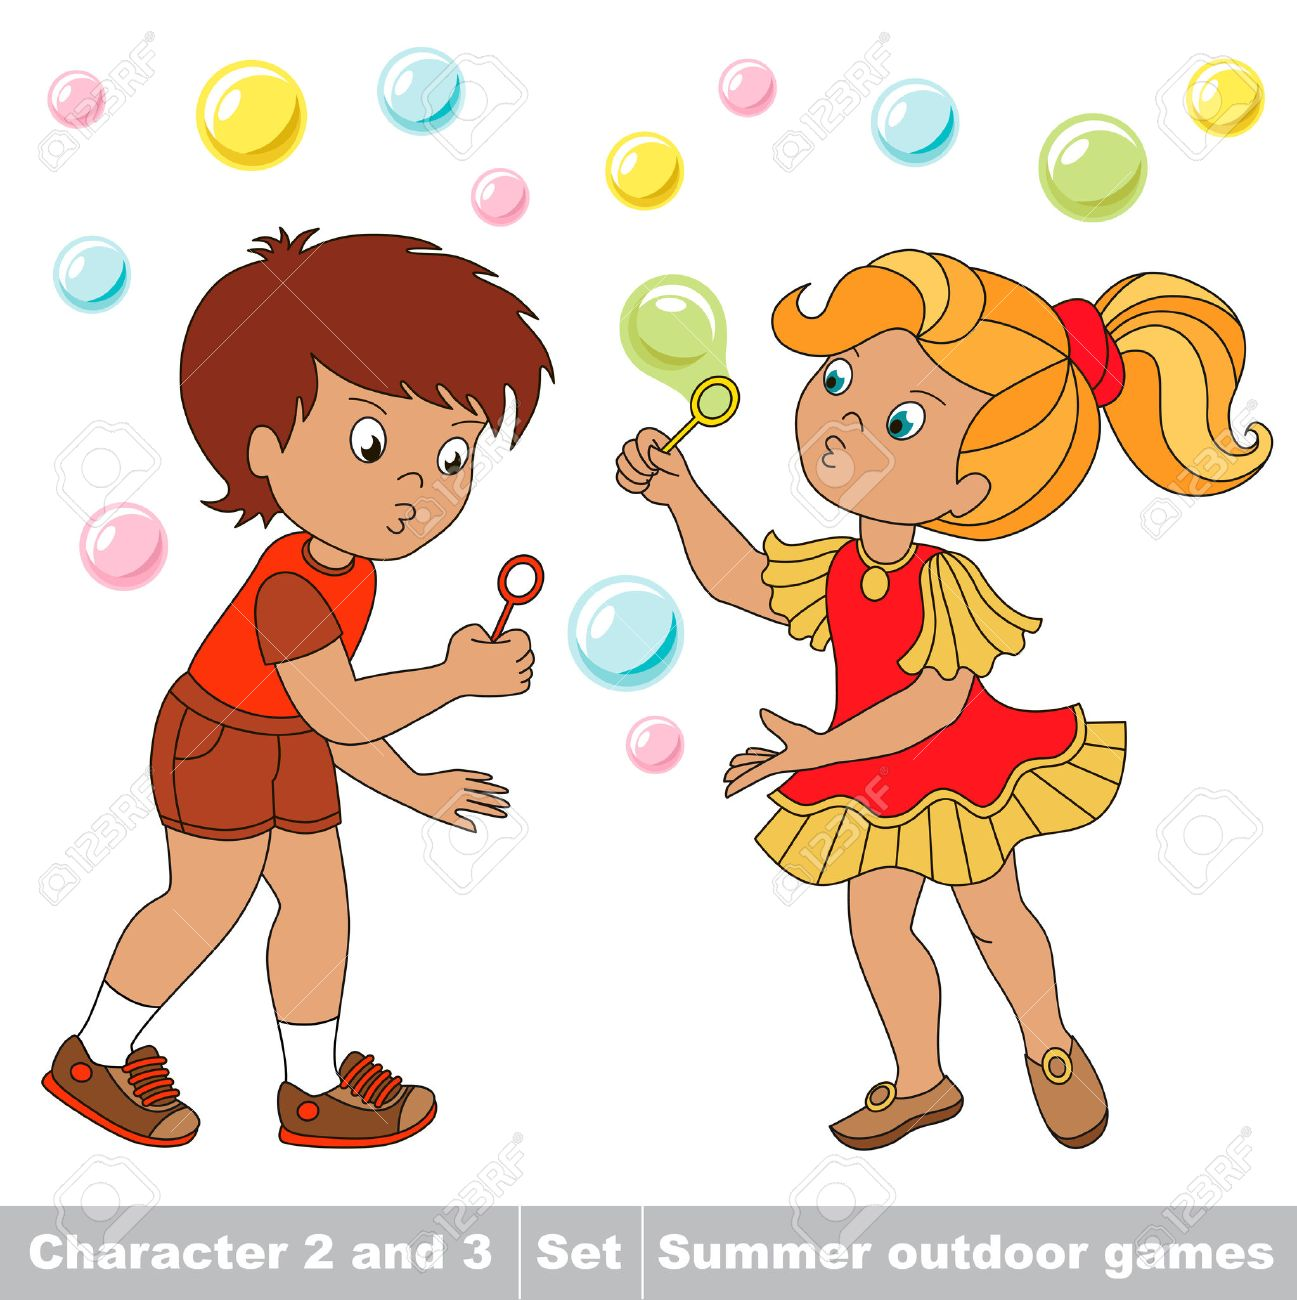 small baby boy and friend playing in the yard inflate soap